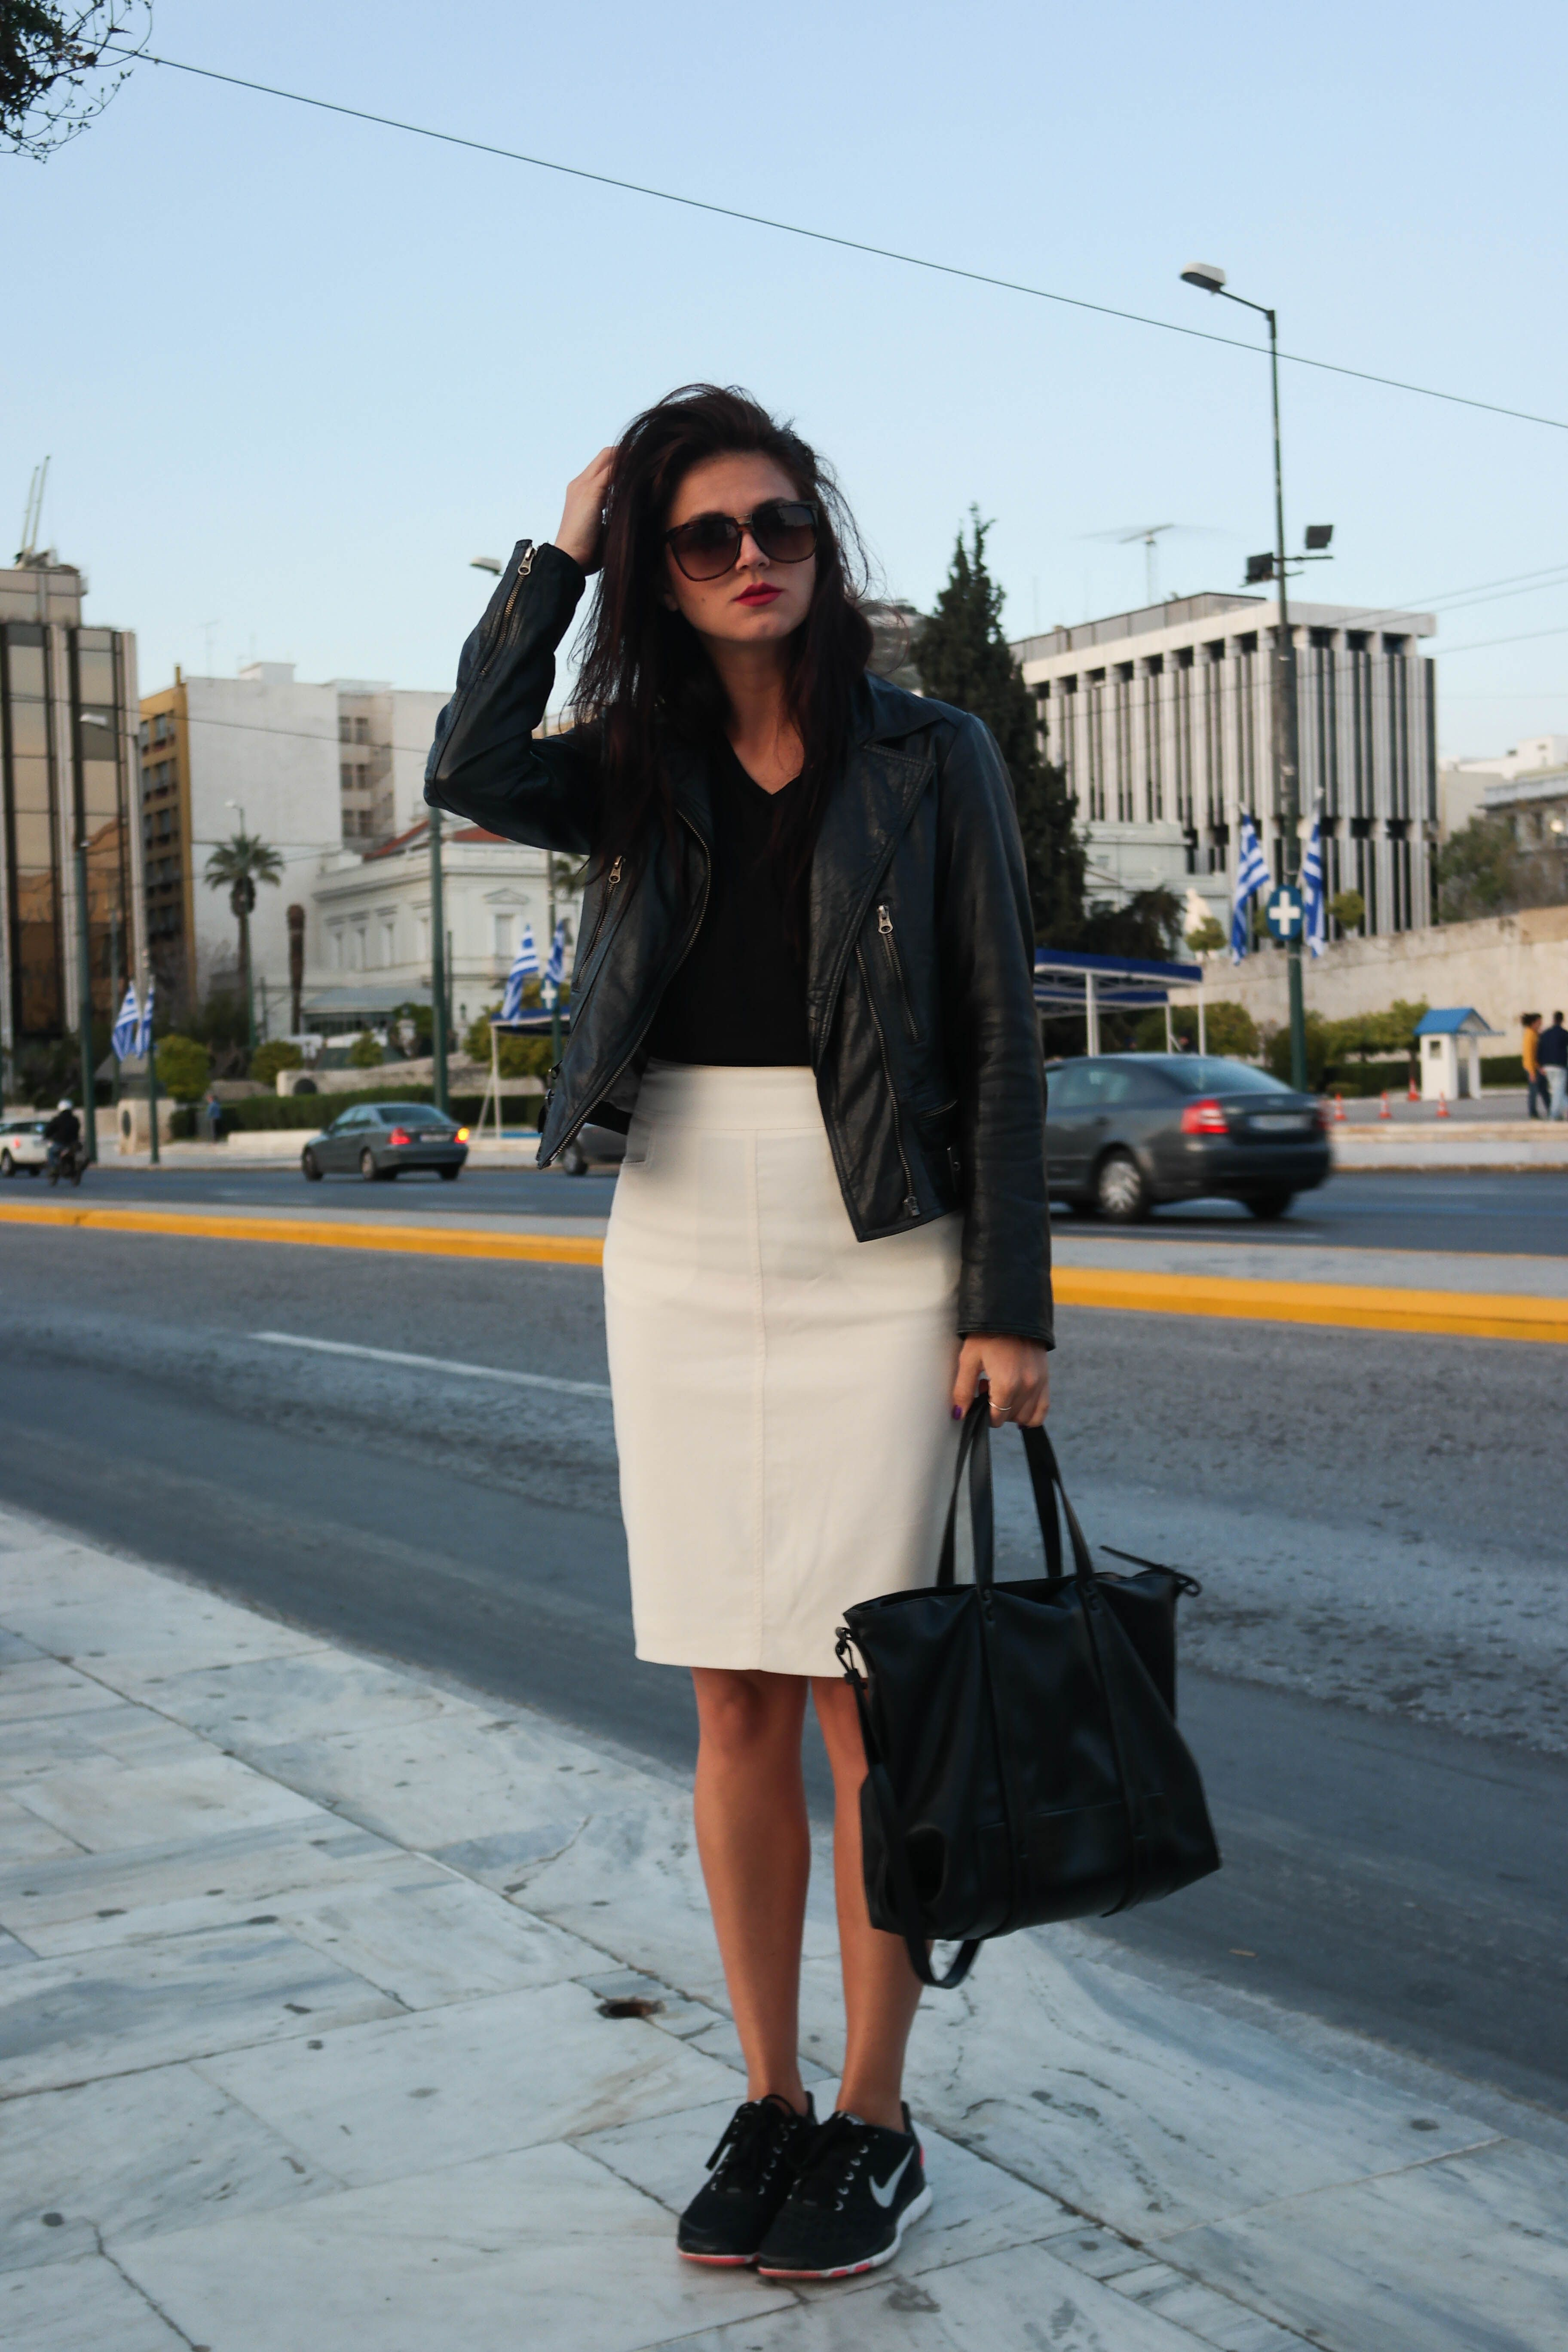 ed487d497 street style, Athens, Greece, black and white, leather, black leather,  leather jacket, white pencil skirt, sneakers, sneakers outfit, sneakers and  skirt, ...